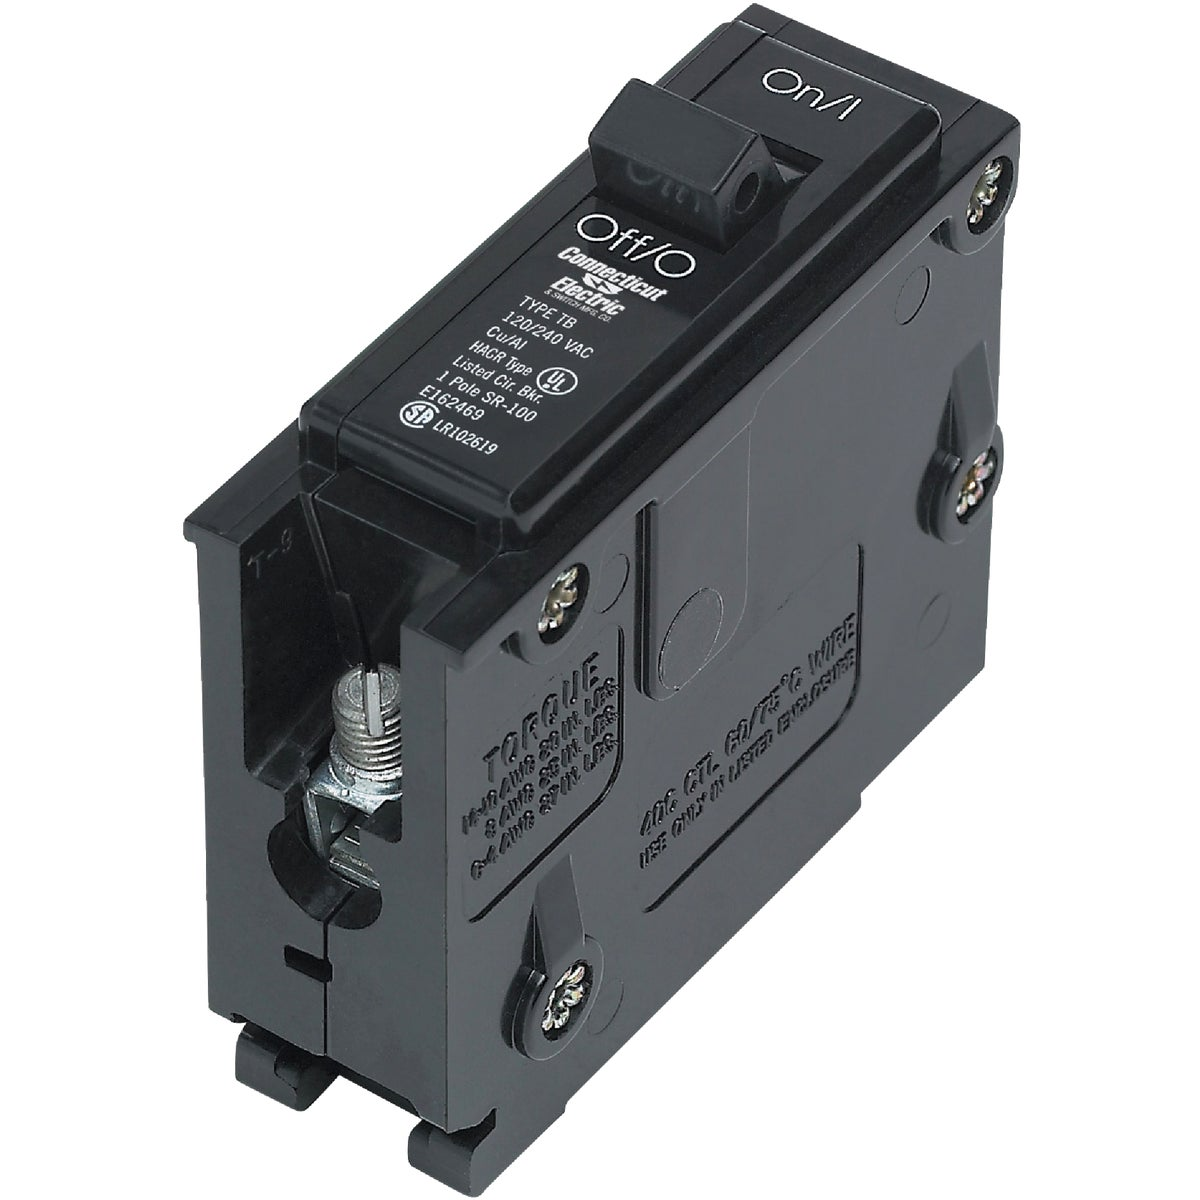 15A SP CIRCUIT BREAKER - ICBQ115 by Connecticut Electric